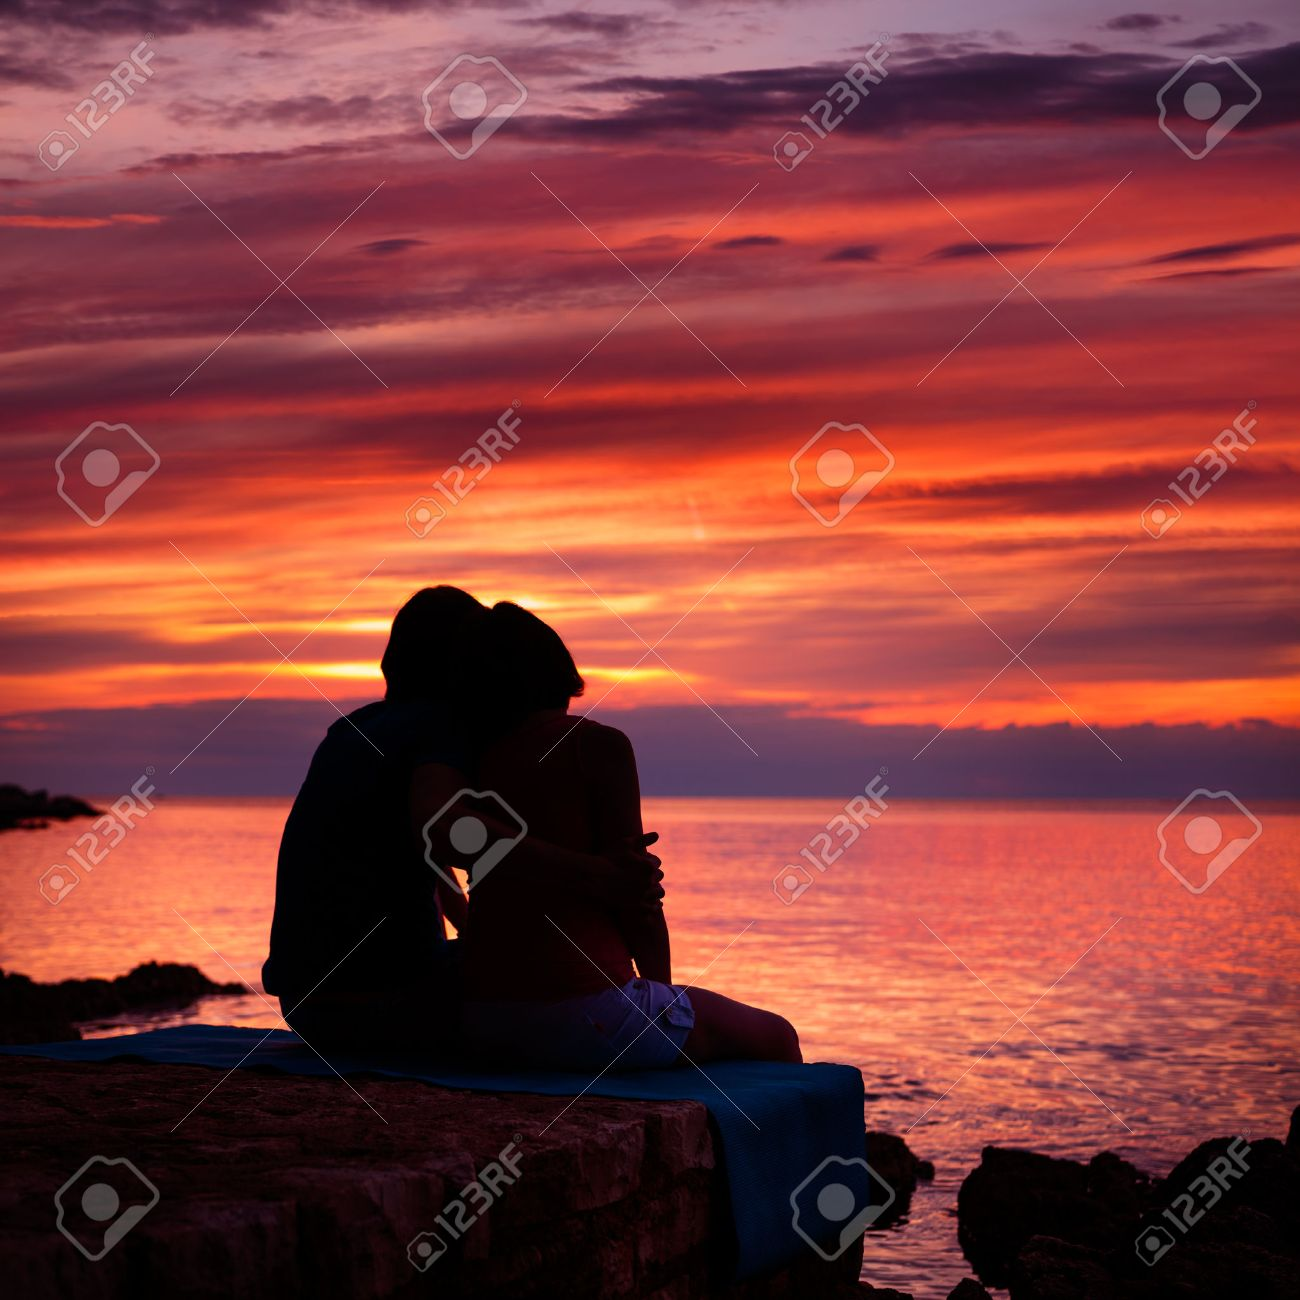 Silhouette of Romantic Couple Embracing and Watching Sea Sunset. Summer Nature Background. Copy Space. Love and Travel Concept. - 35751494